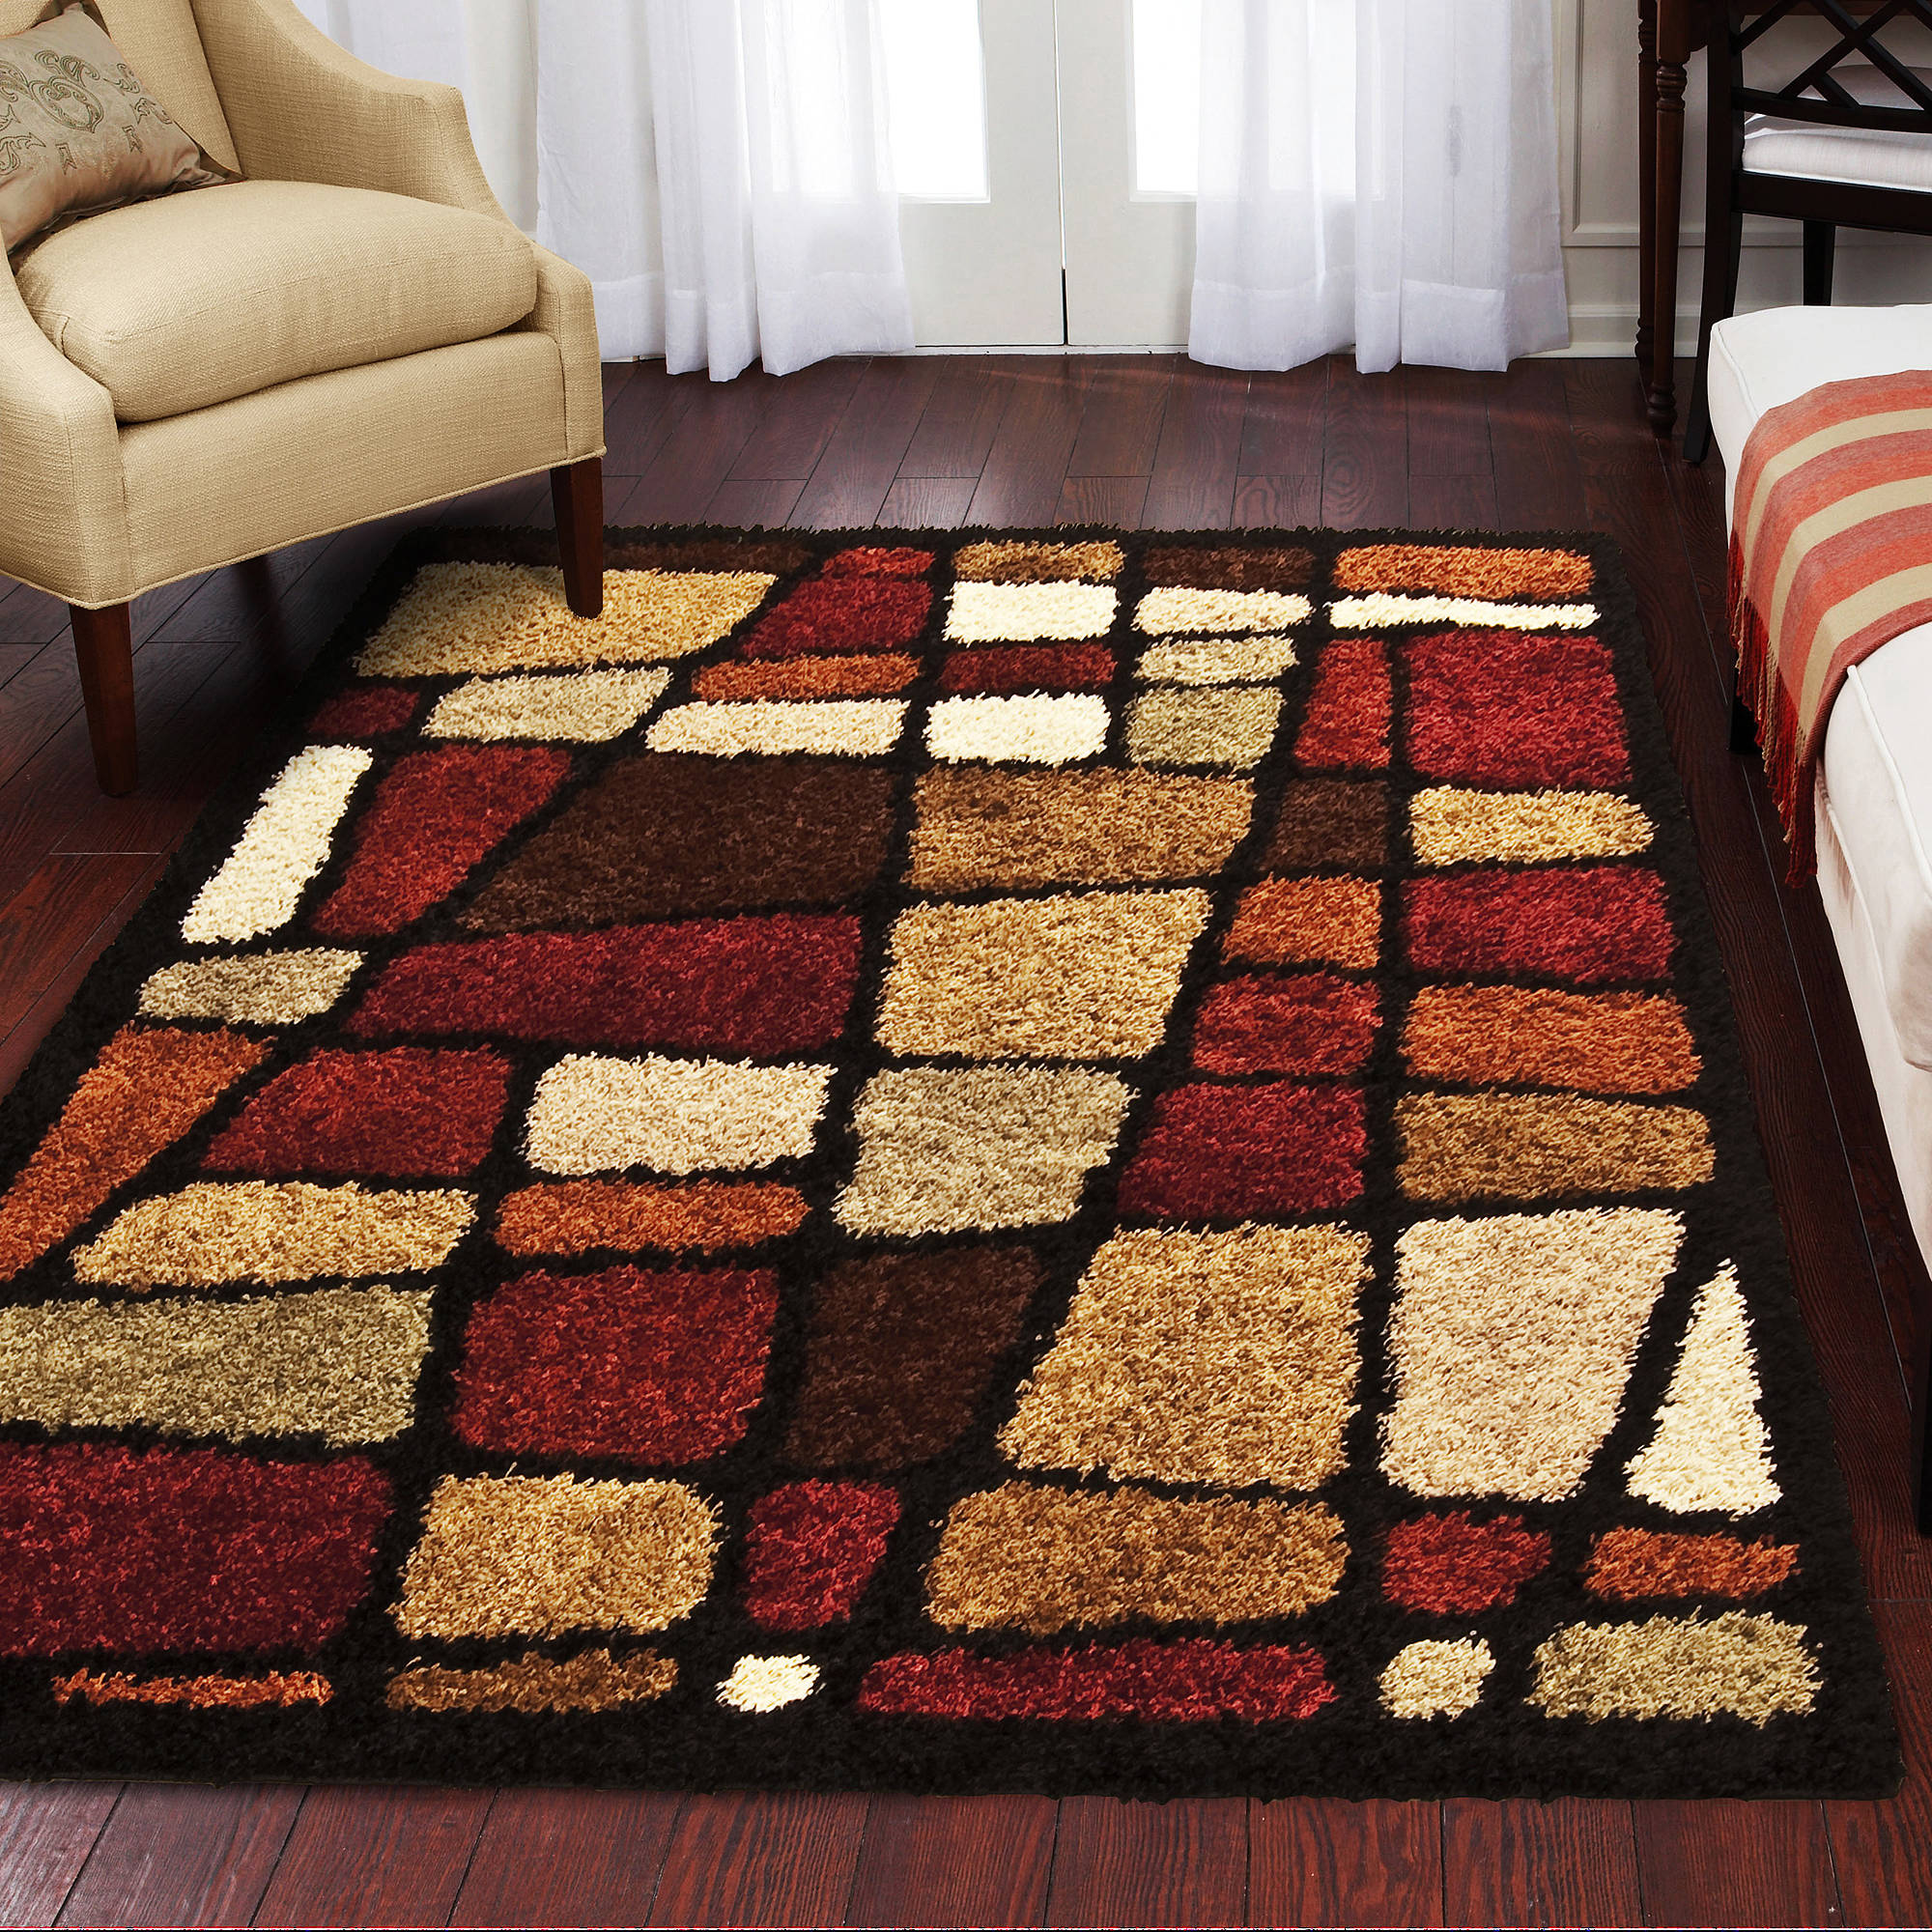 Orian Rugs Shag Streetfair Multi Colored Area Rug Or Runner